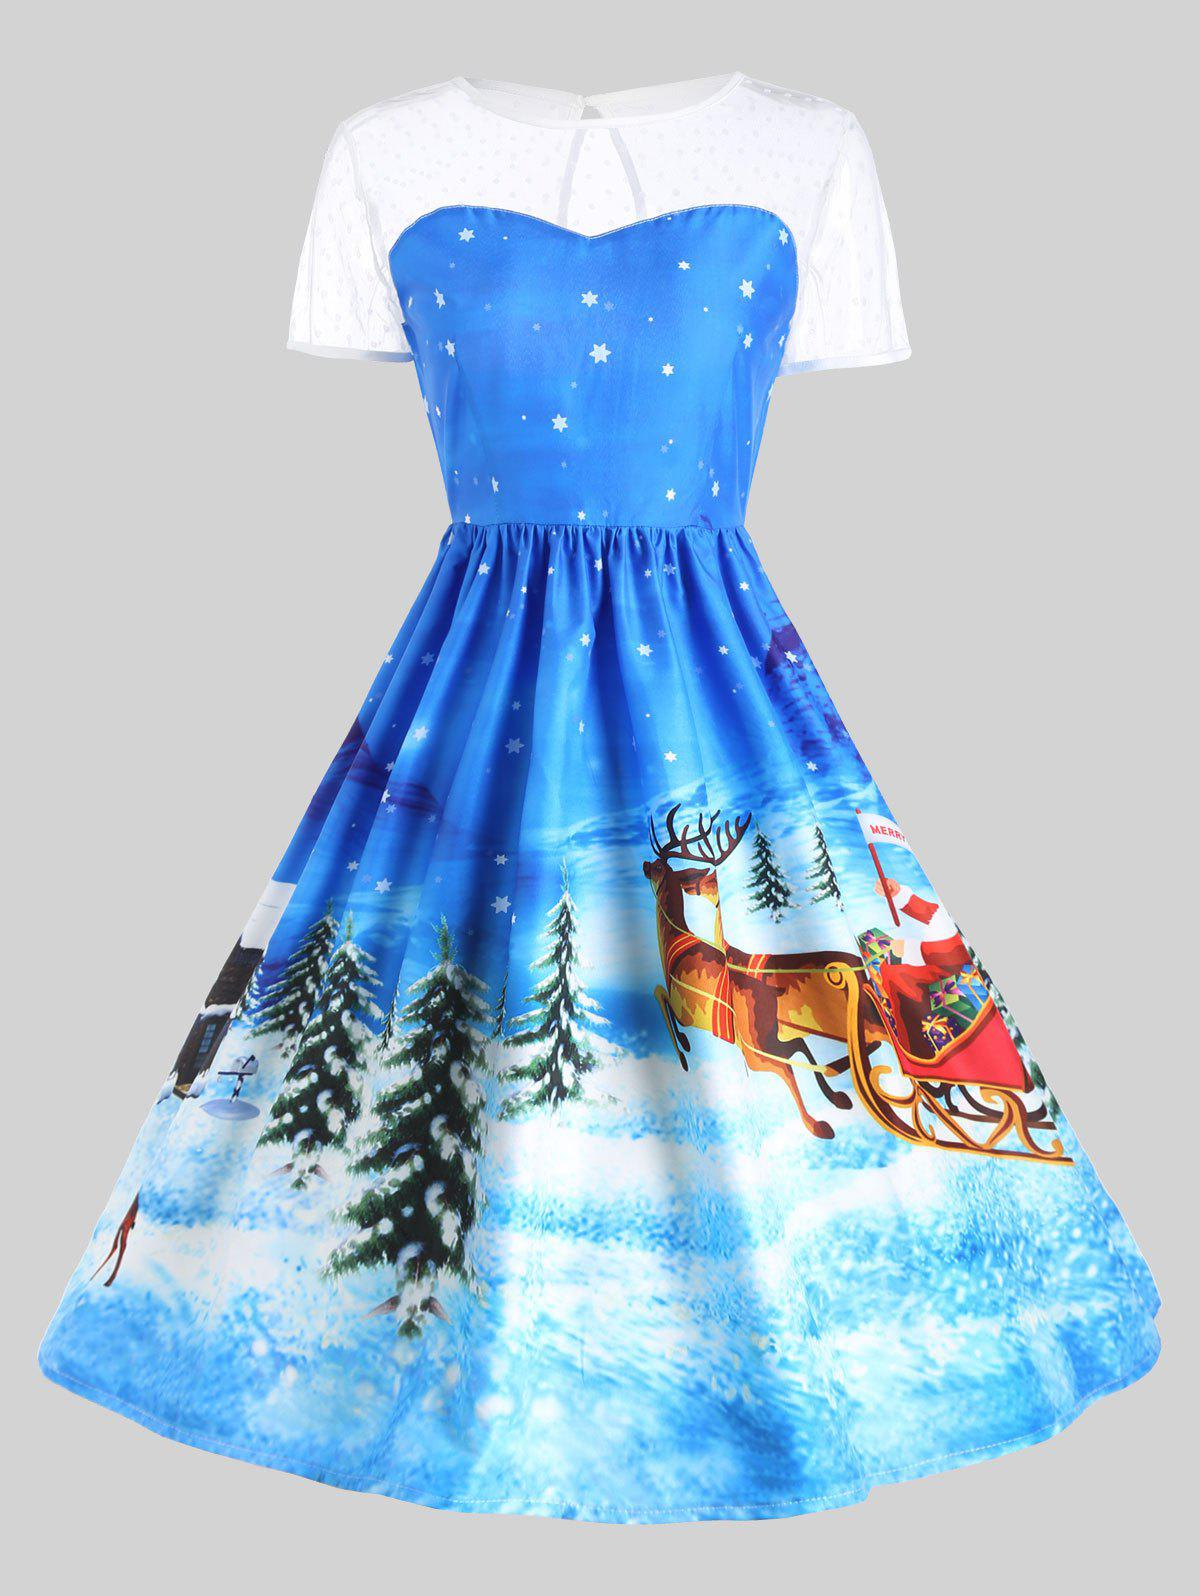 Father Christmas Sleigh Party Gown DressWOMEN<br><br>Size: L; Color: BLUE; Style: Cute; Material: Polyester; Silhouette: Ball Gown; Dresses Length: Mid-Calf; Neckline: Round Collar; Sleeve Length: Short Sleeves; Pattern Type: Plant,Print; With Belt: No; Season: Fall,Winter; Weight: 0.2400kg; Package Contents: 1 x Dress;